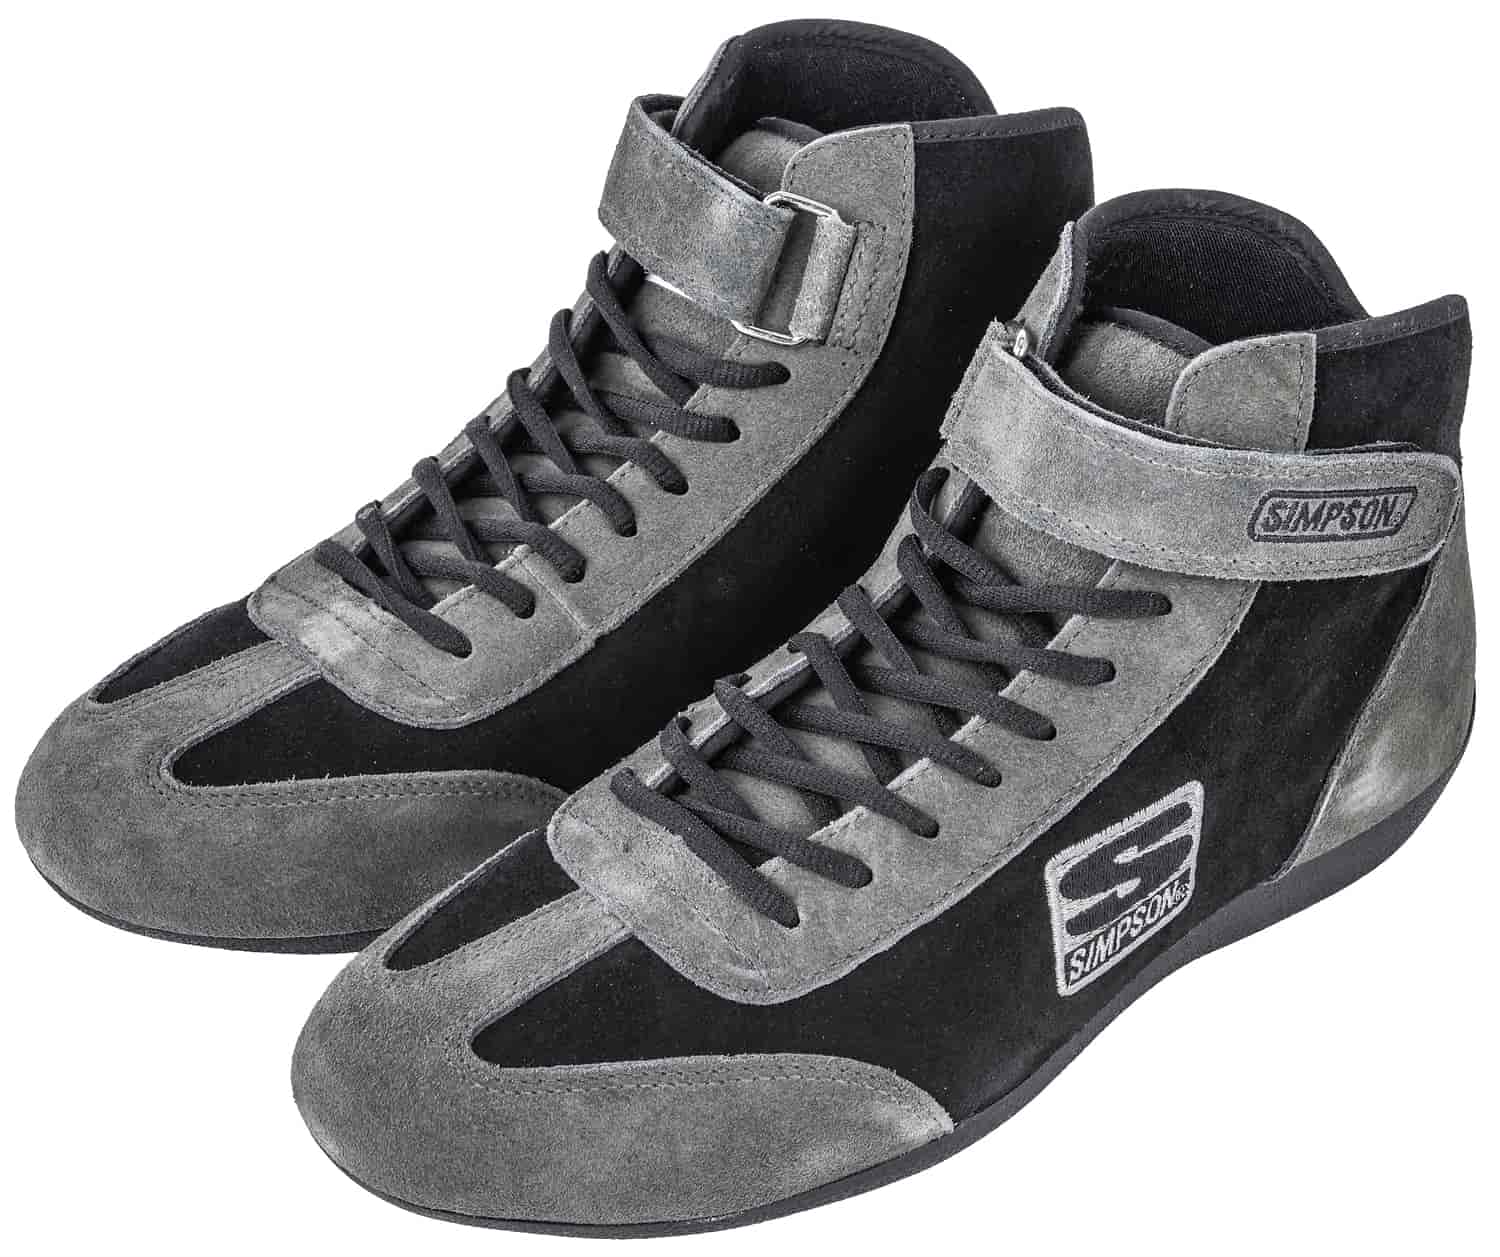 da1714e01d305c Simpson Midtop Racing Shoe Size 11. Simpson MT110BK